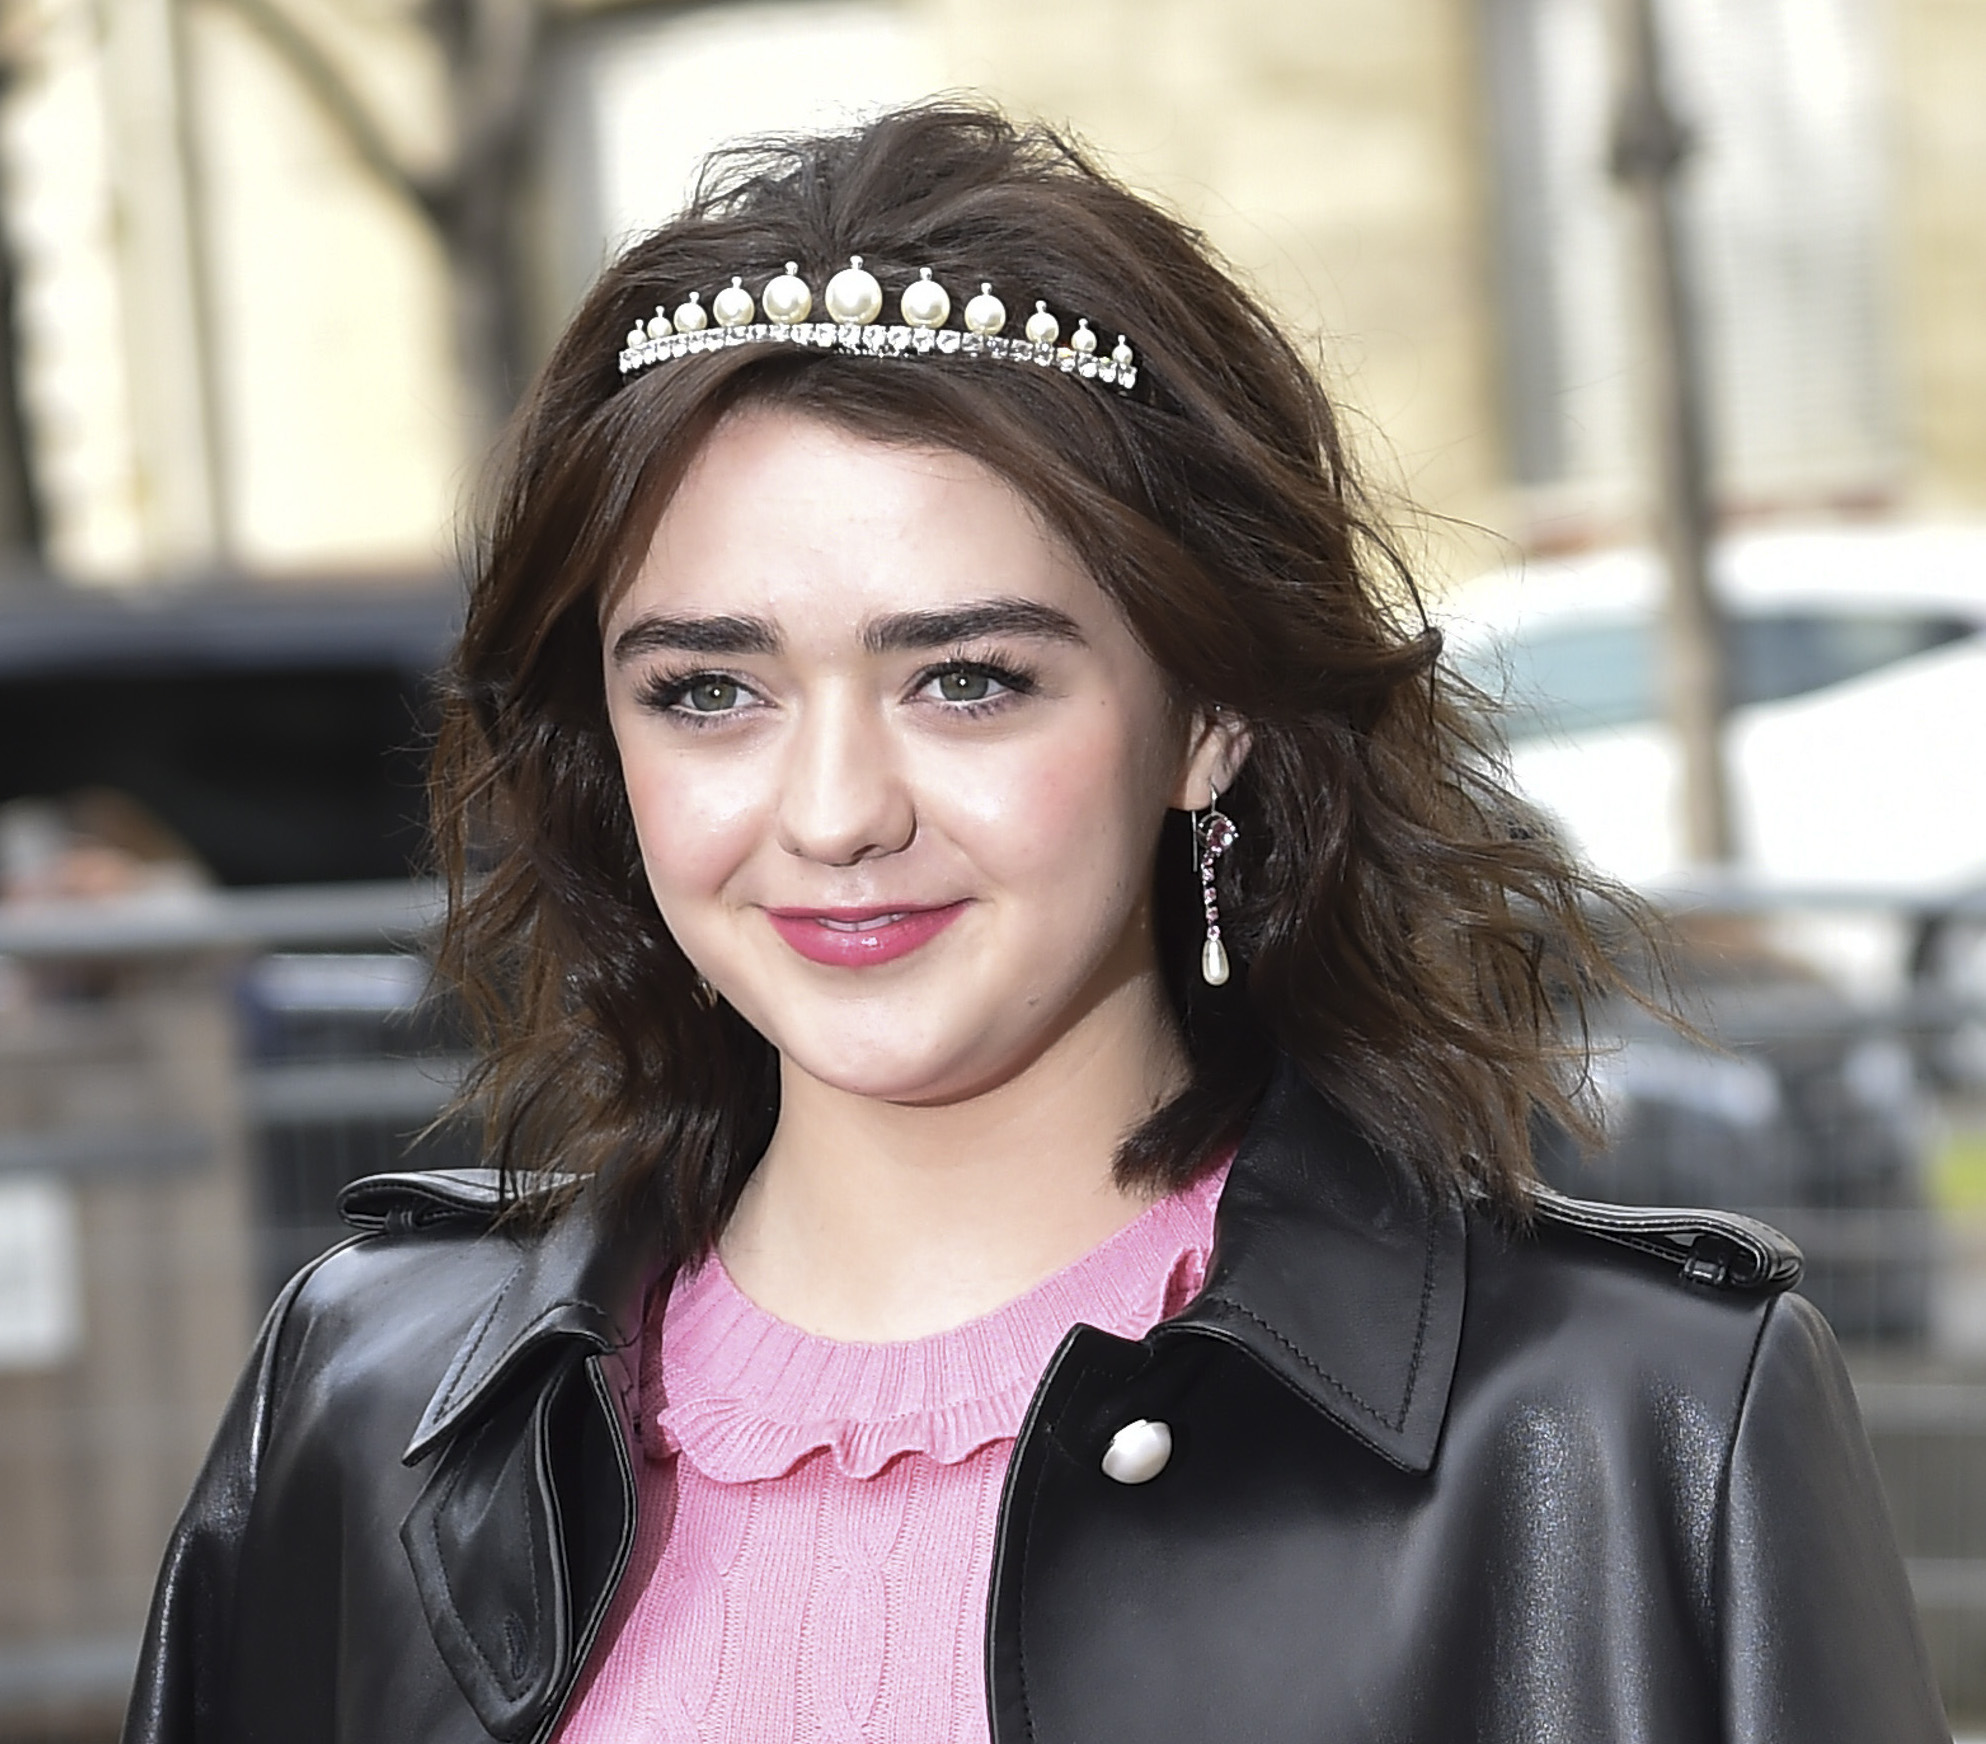 Maisie Williams' heart dress is the ideal piece one needs to go from winter to spring